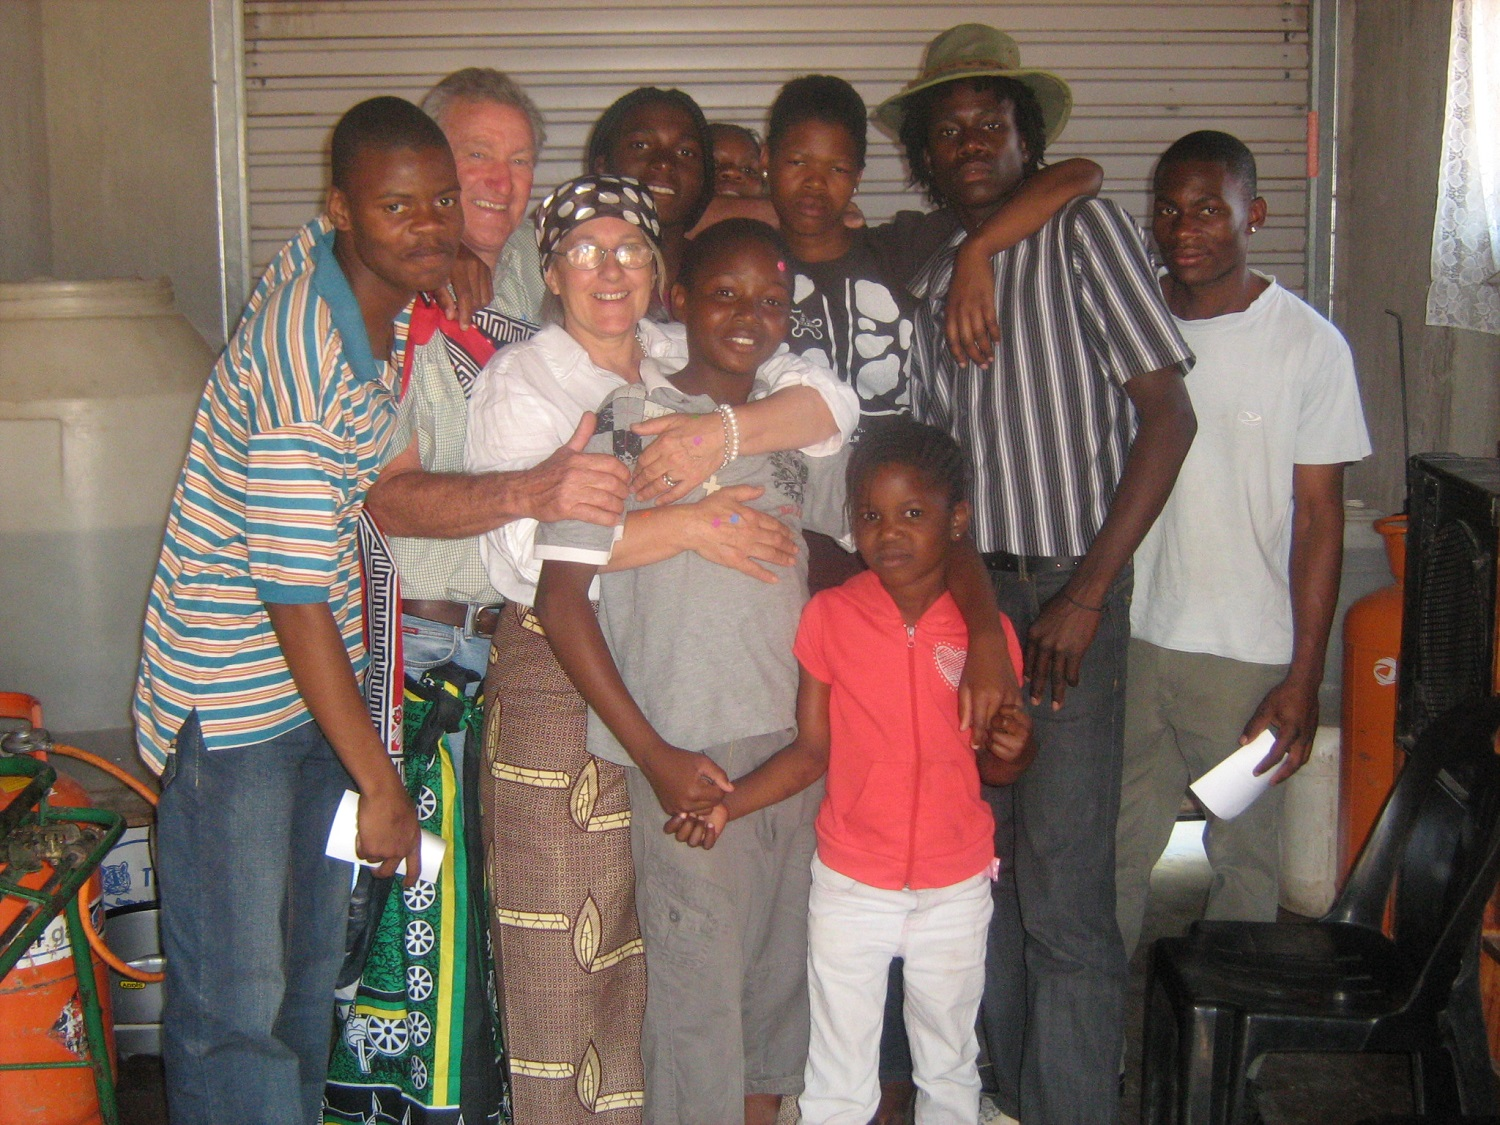 olieve-and-olie-helping-south-african-communities-become-self-sufficient.JPG